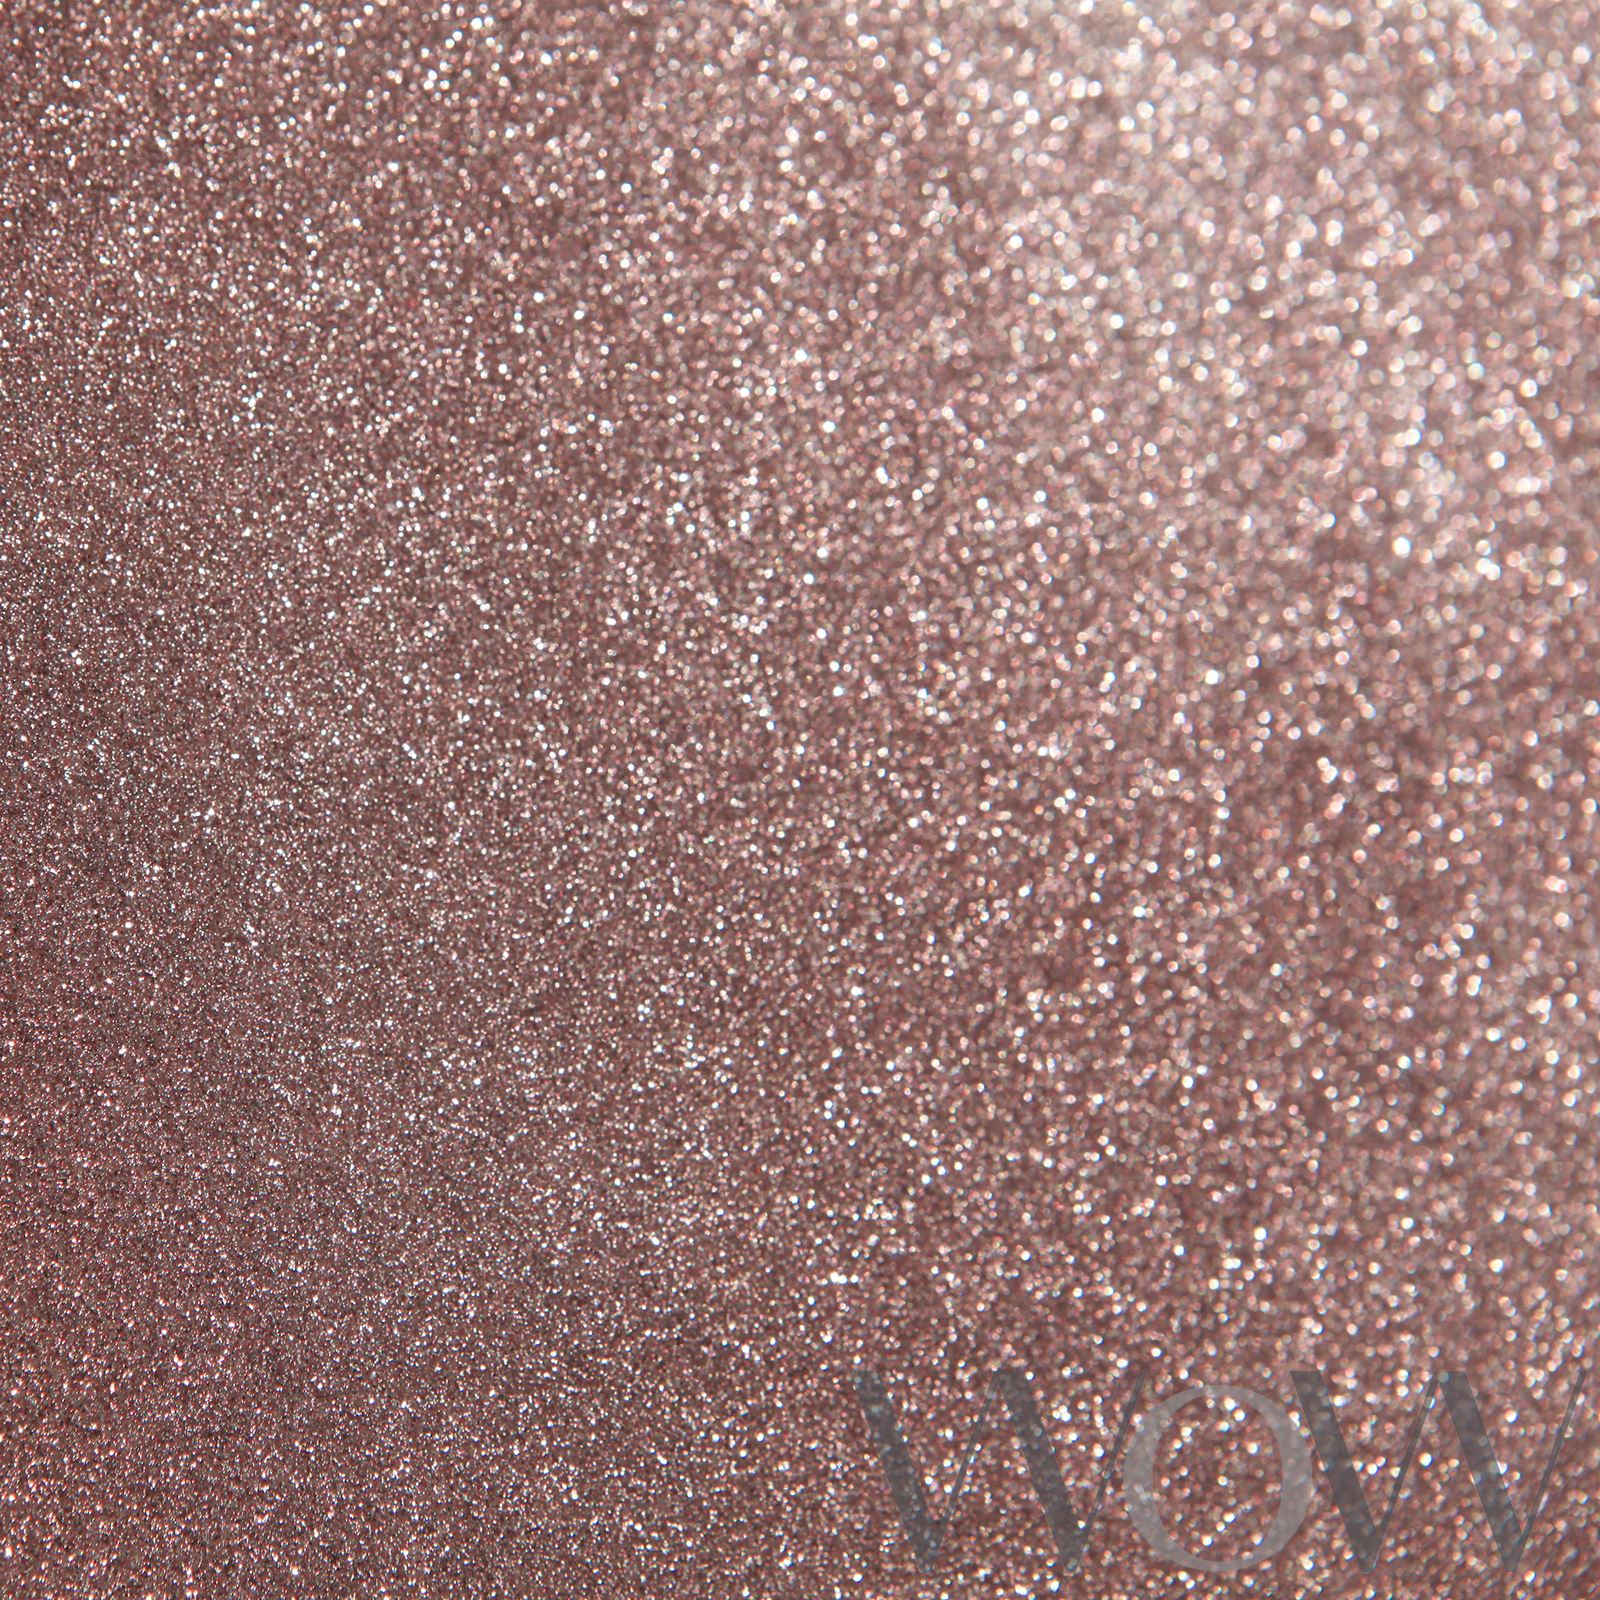 Girls Rose Gold Wallpaper: LUXE GLITTER SPARKLE WALLPAPER SAPPHIRE PINK ROSE GOLD